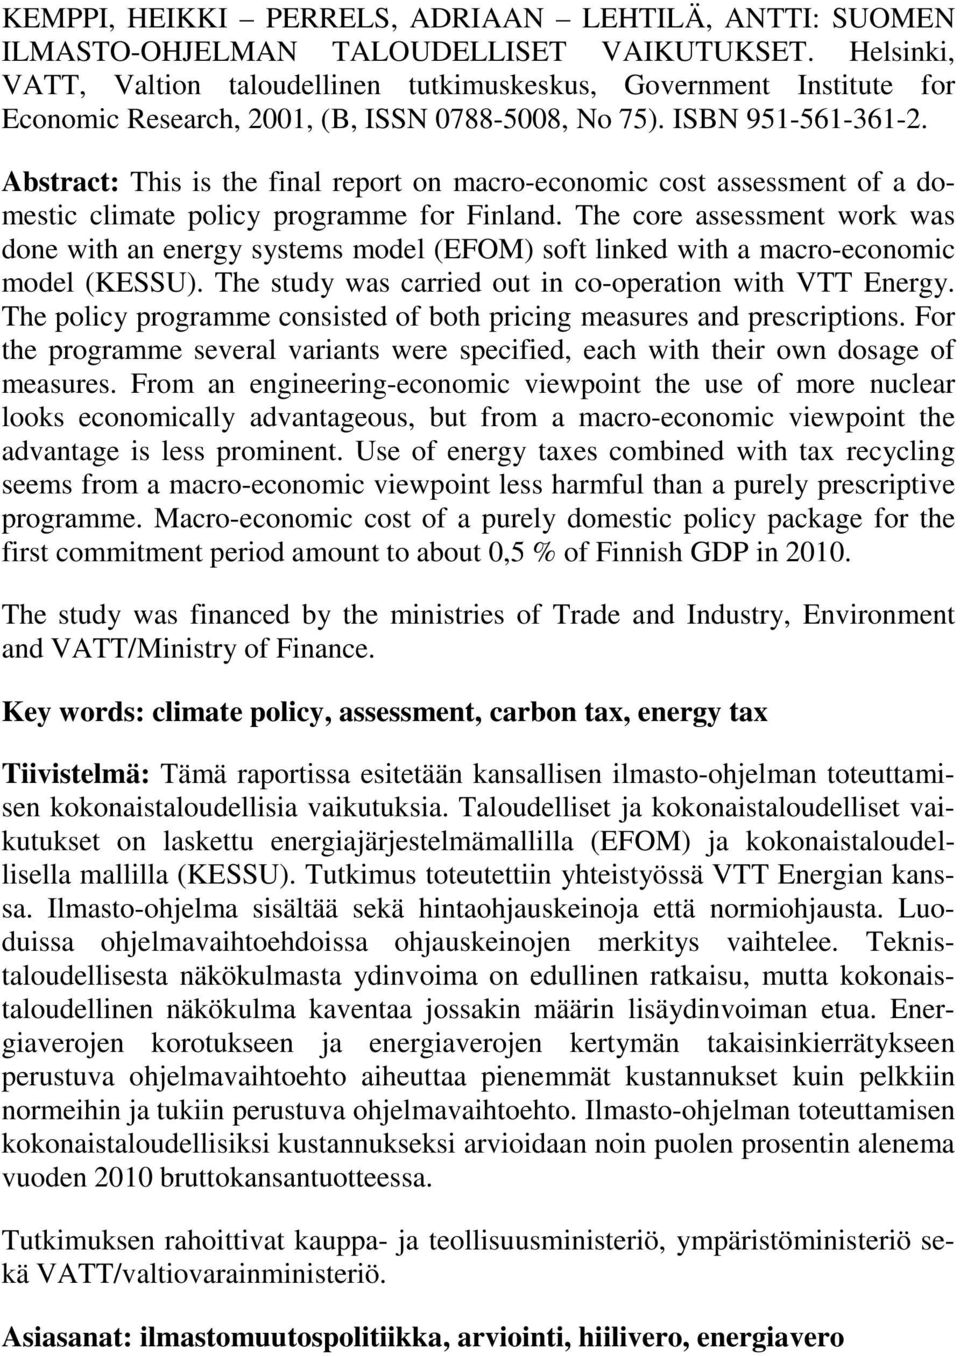 Abstract: This is the final report on macro-economic cost assessment of a domestic climate policy programme for Finland.